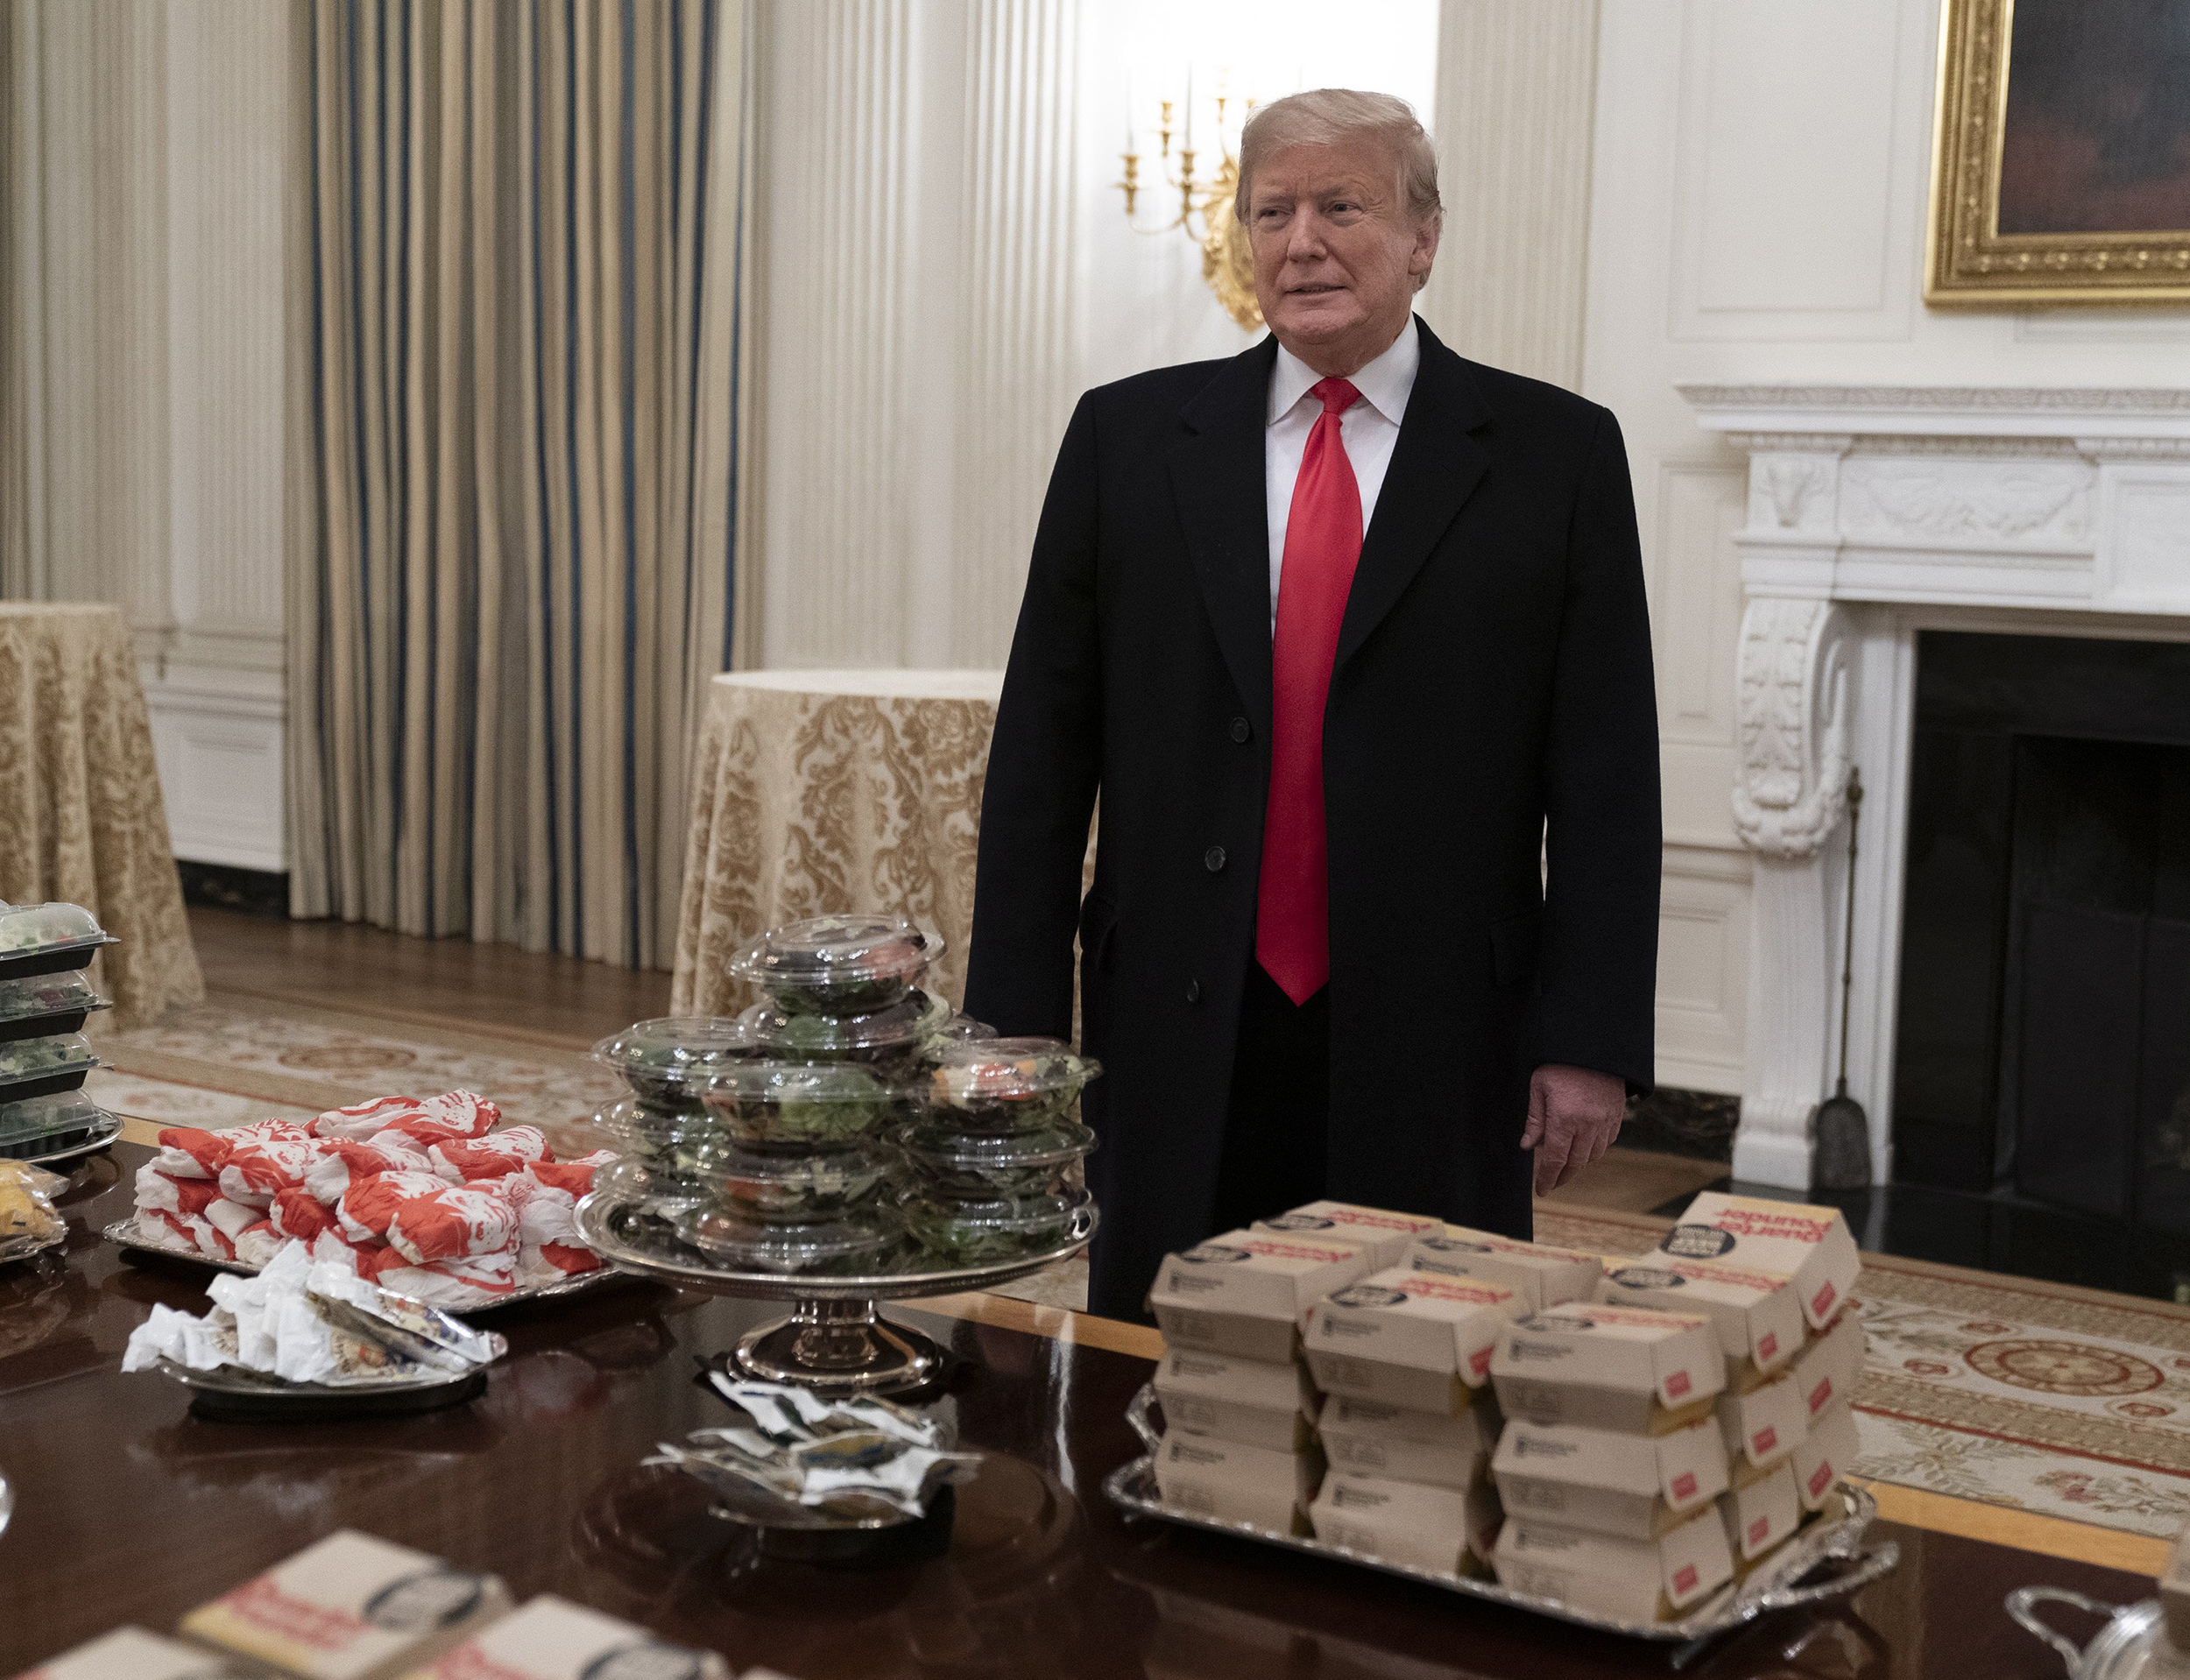 Trump Welcomes Clemson Tigers To The White House With American Fast Food Paid For By Me